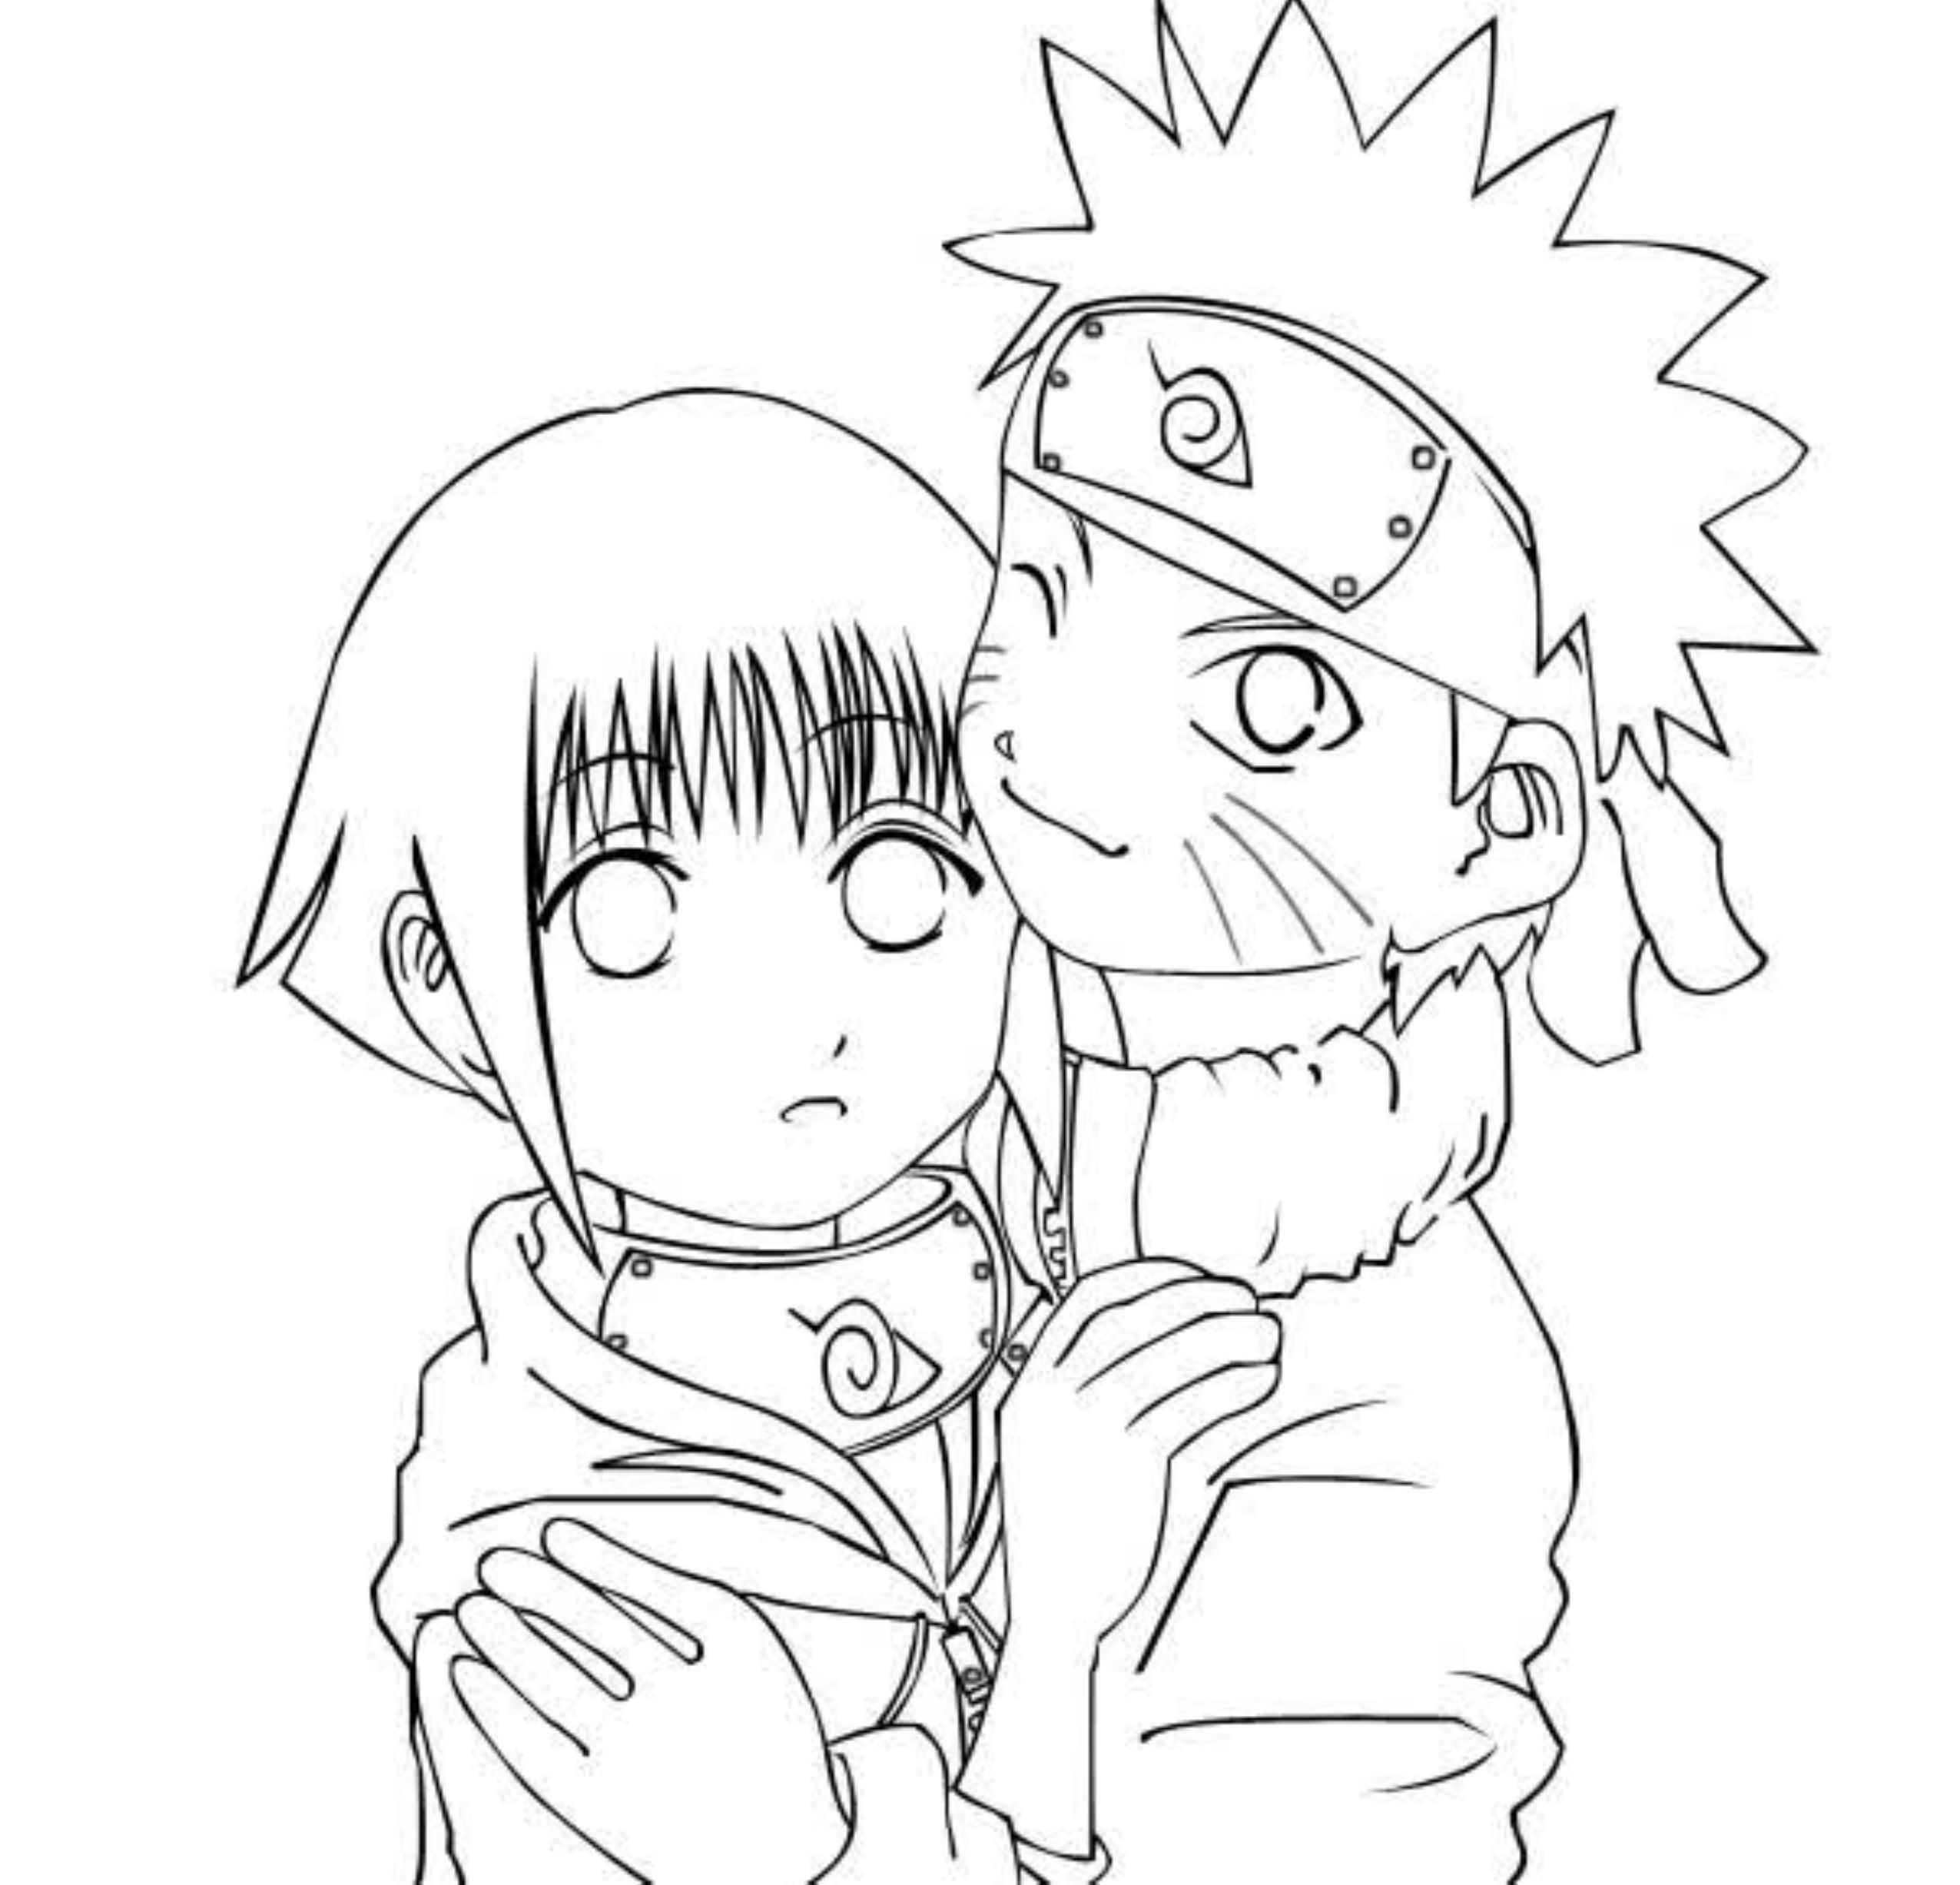 2551x2453 Naruto Coloring Pages Anime For Kids Awesome Arilitv Naruto Naruto